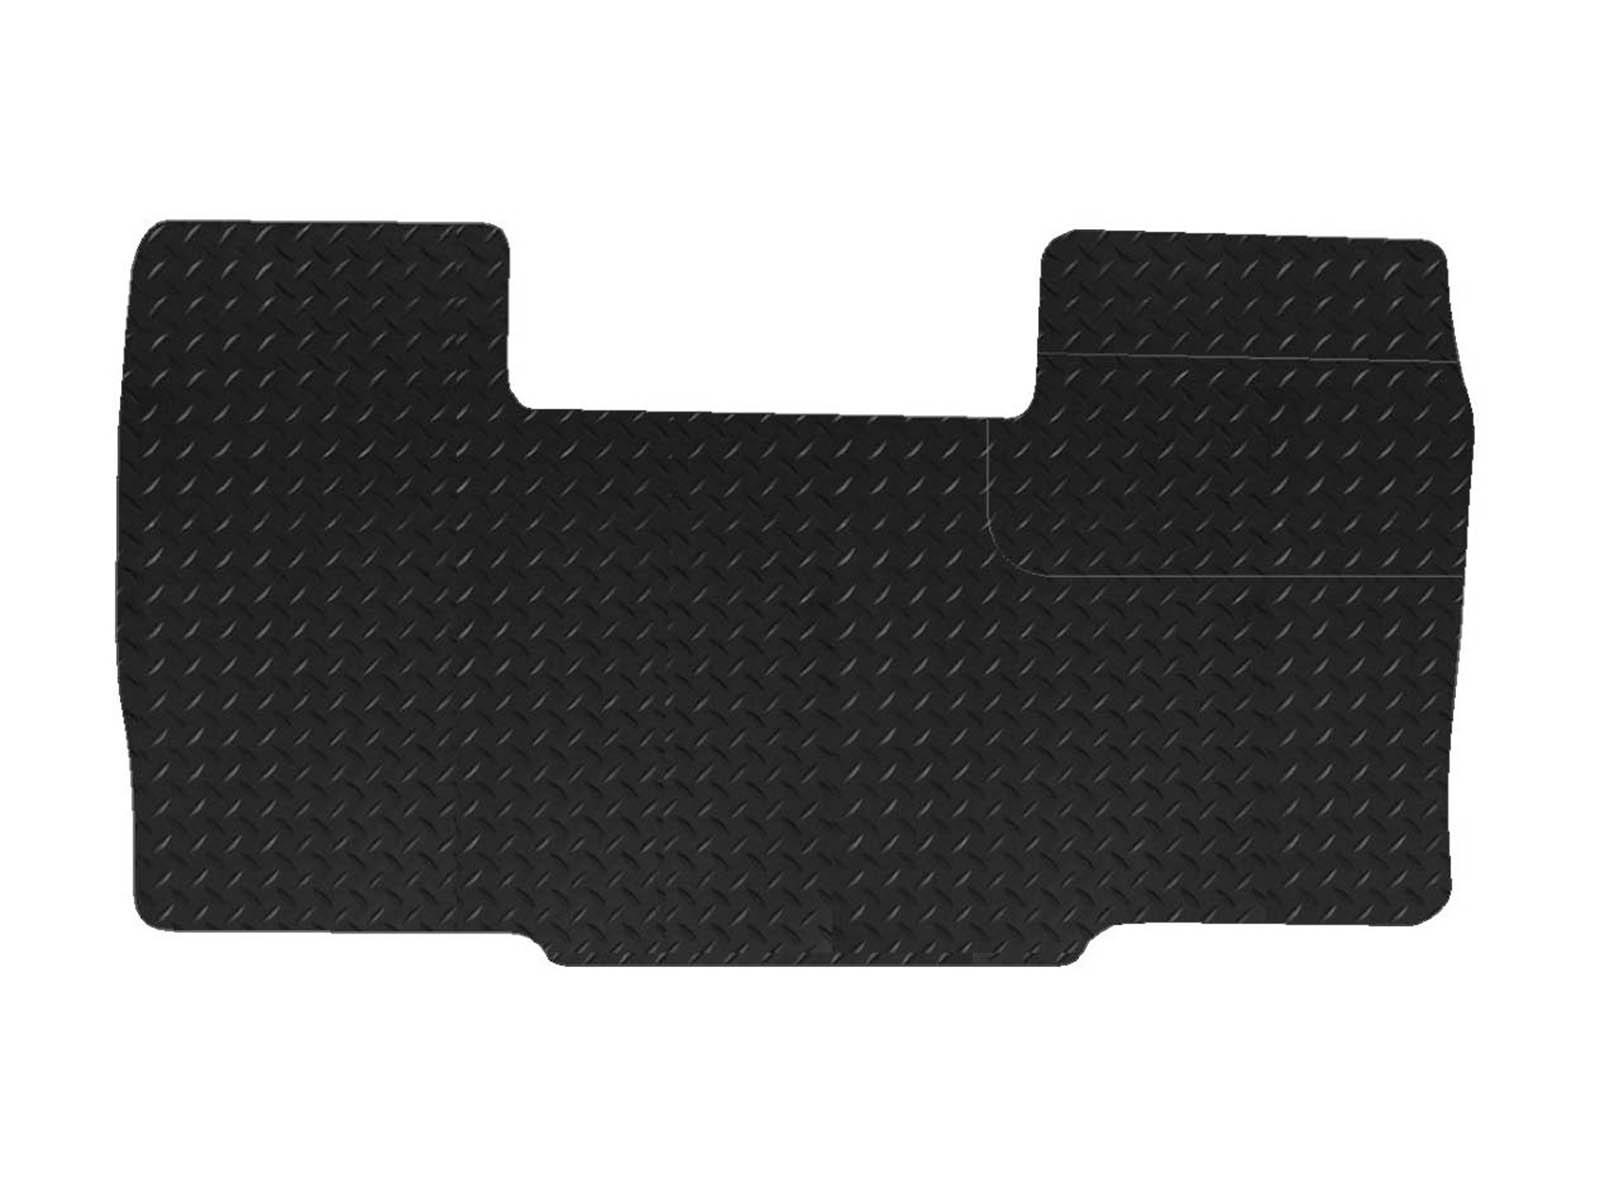 1994 To 2006 Fiat Ducato Van New Quality Black Rubber Tailored Car Floor Mats